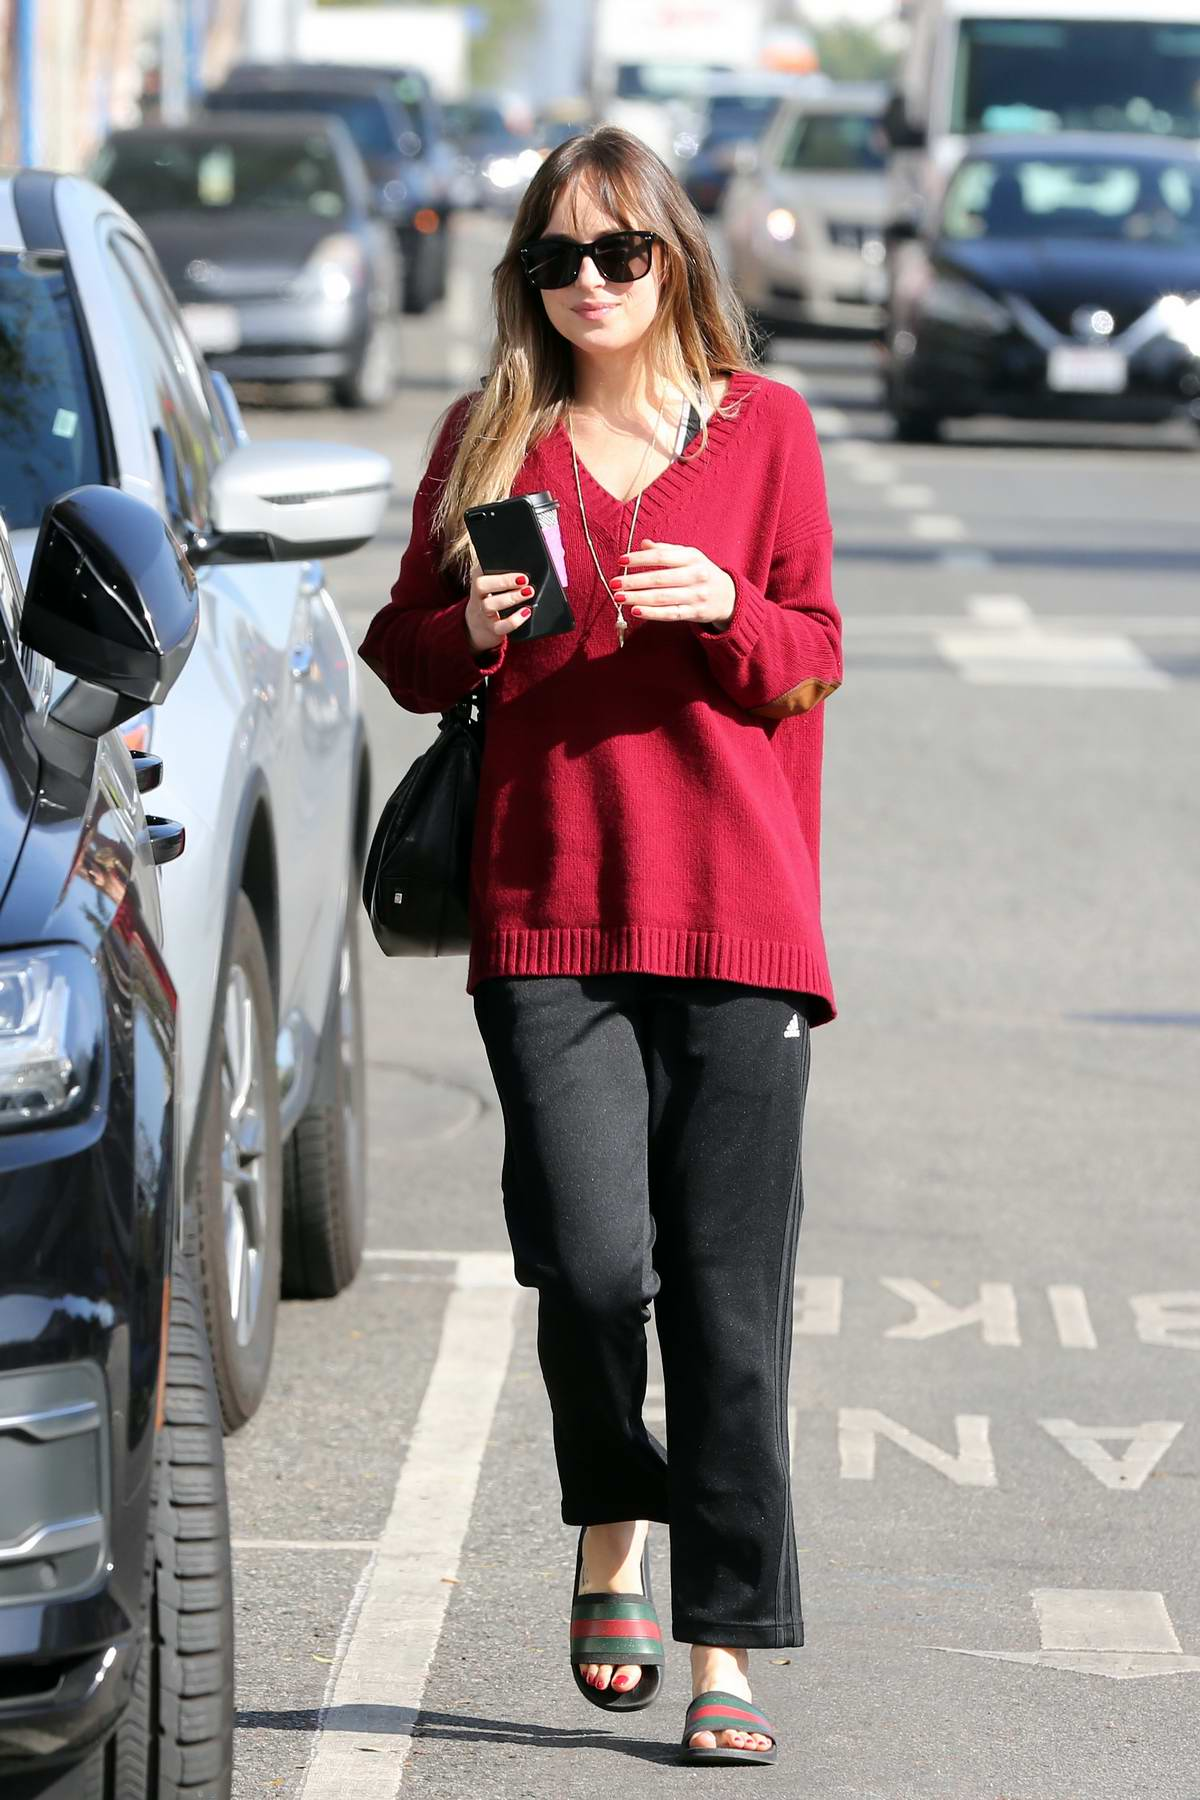 Dakota Johnson wears a red jumper and black adidas pants while out grabbing a coffee with a her friend in West Hollywood, Los Angeles